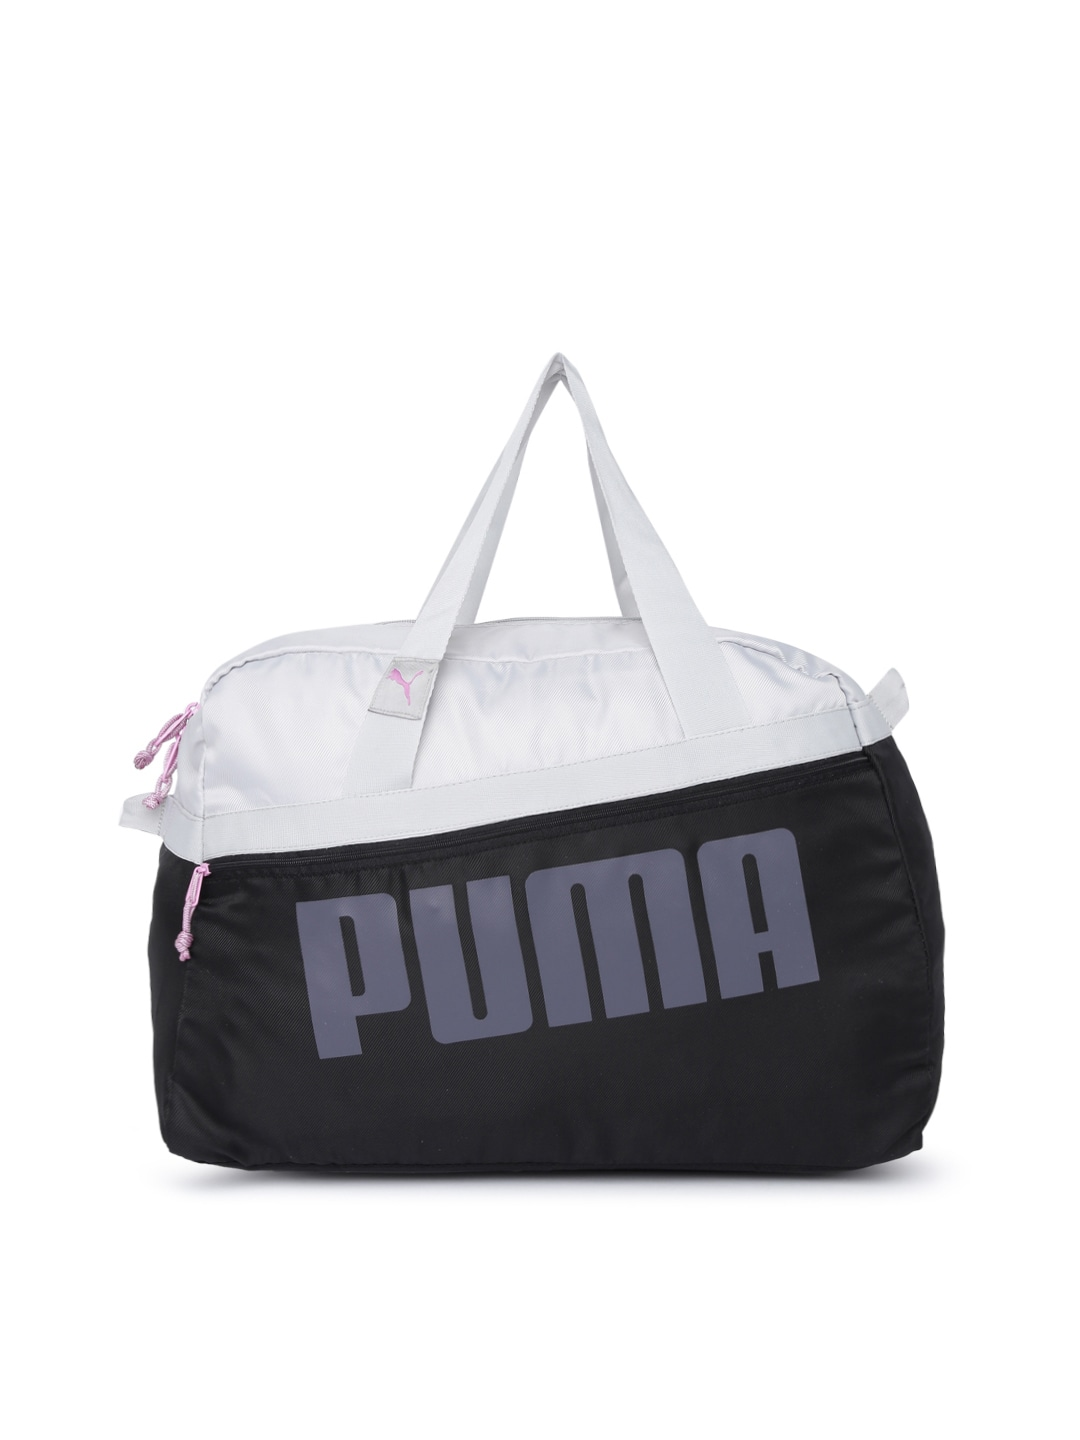 ef9492d89ca Women Puma Bags - Buy Women Puma Bags online in India